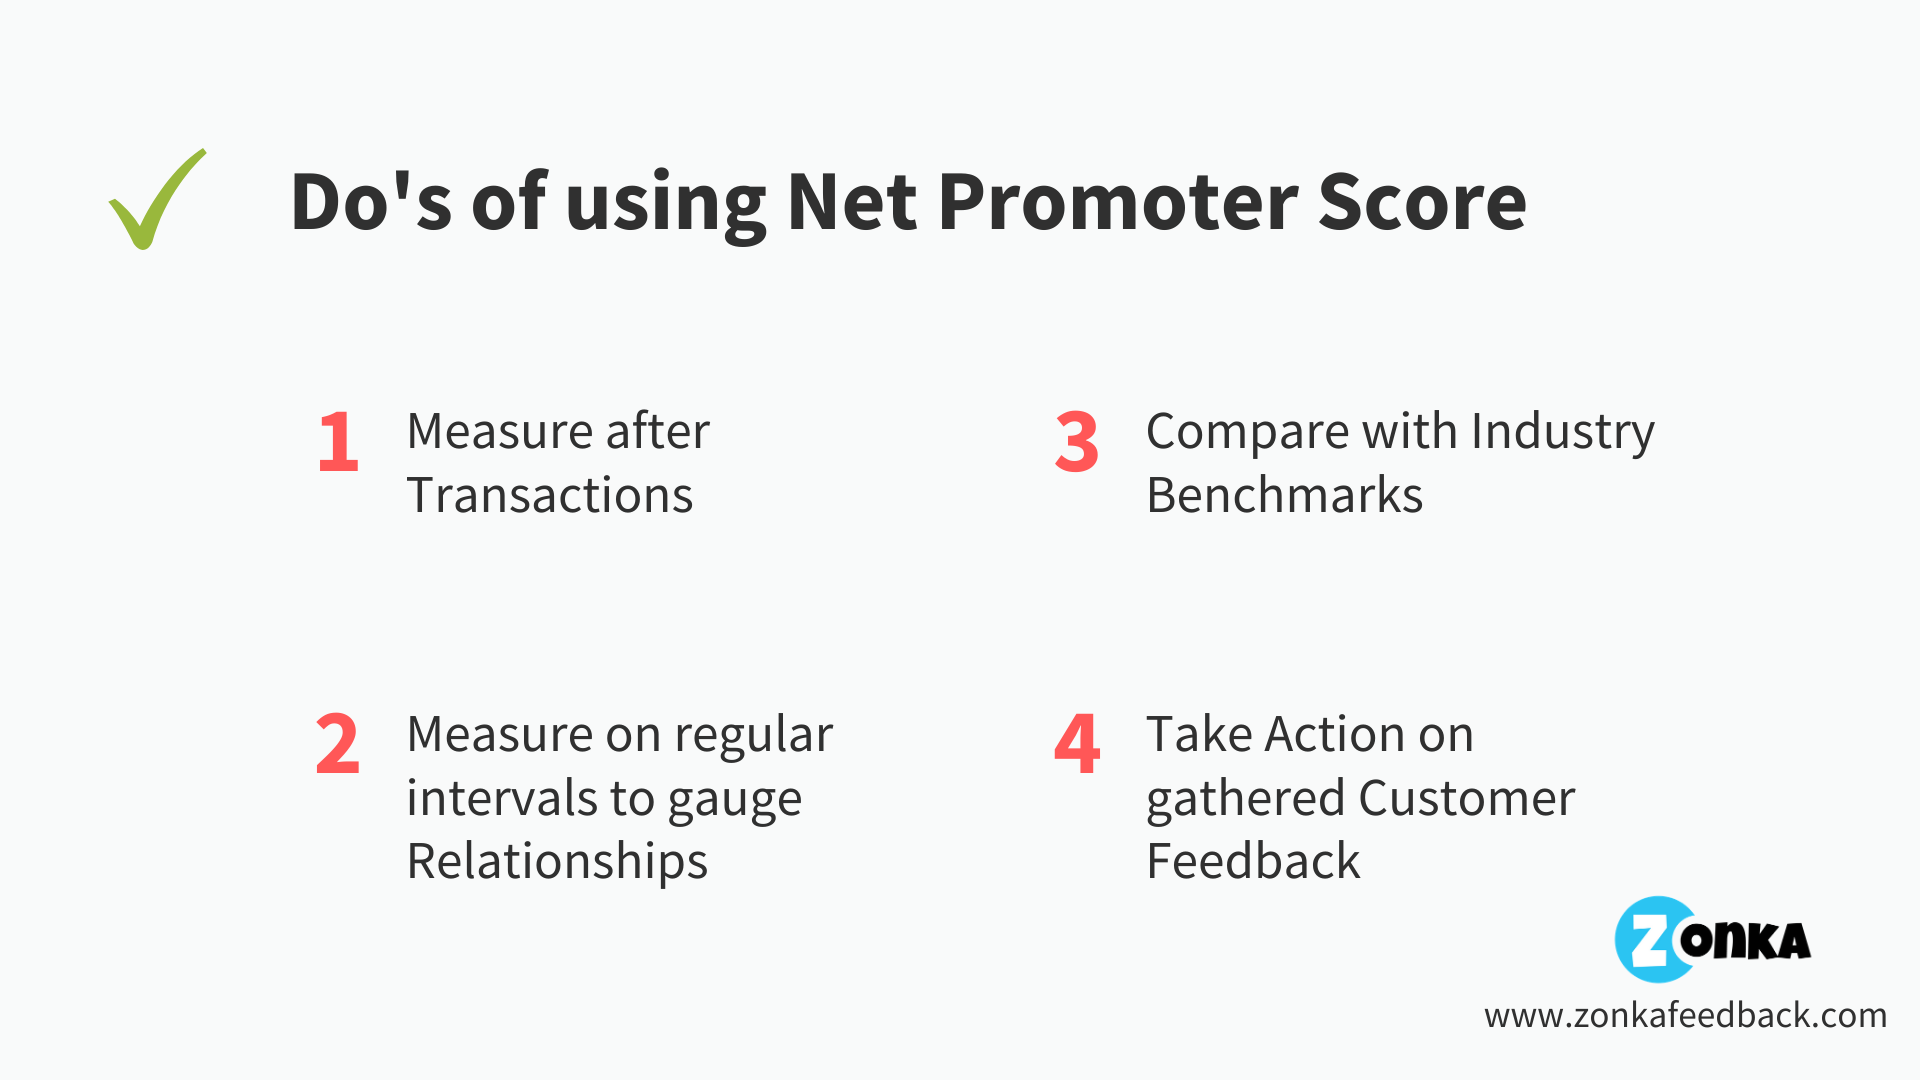 dos-of-net-promoter-score